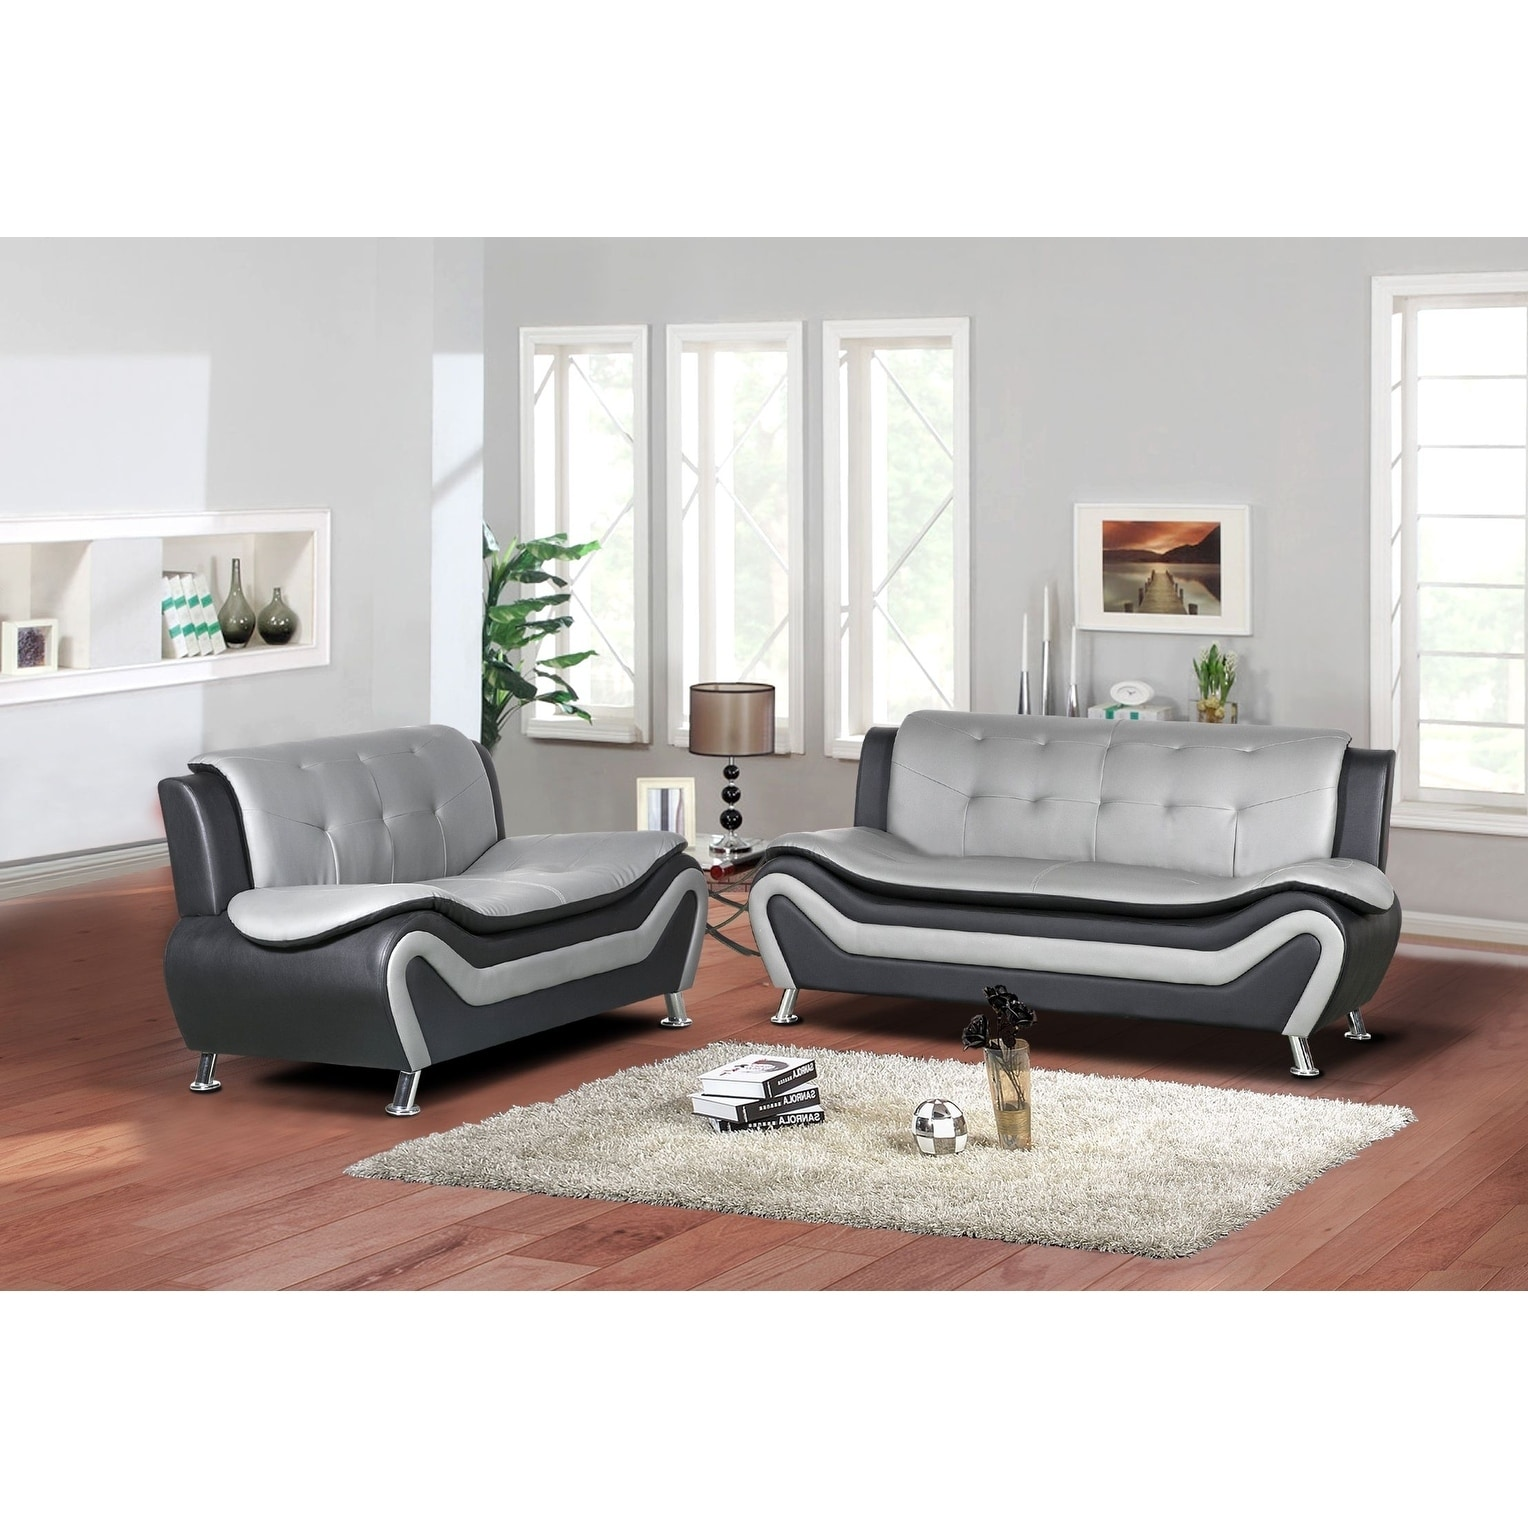 Jasmine Faux leather 2pc Living room Set